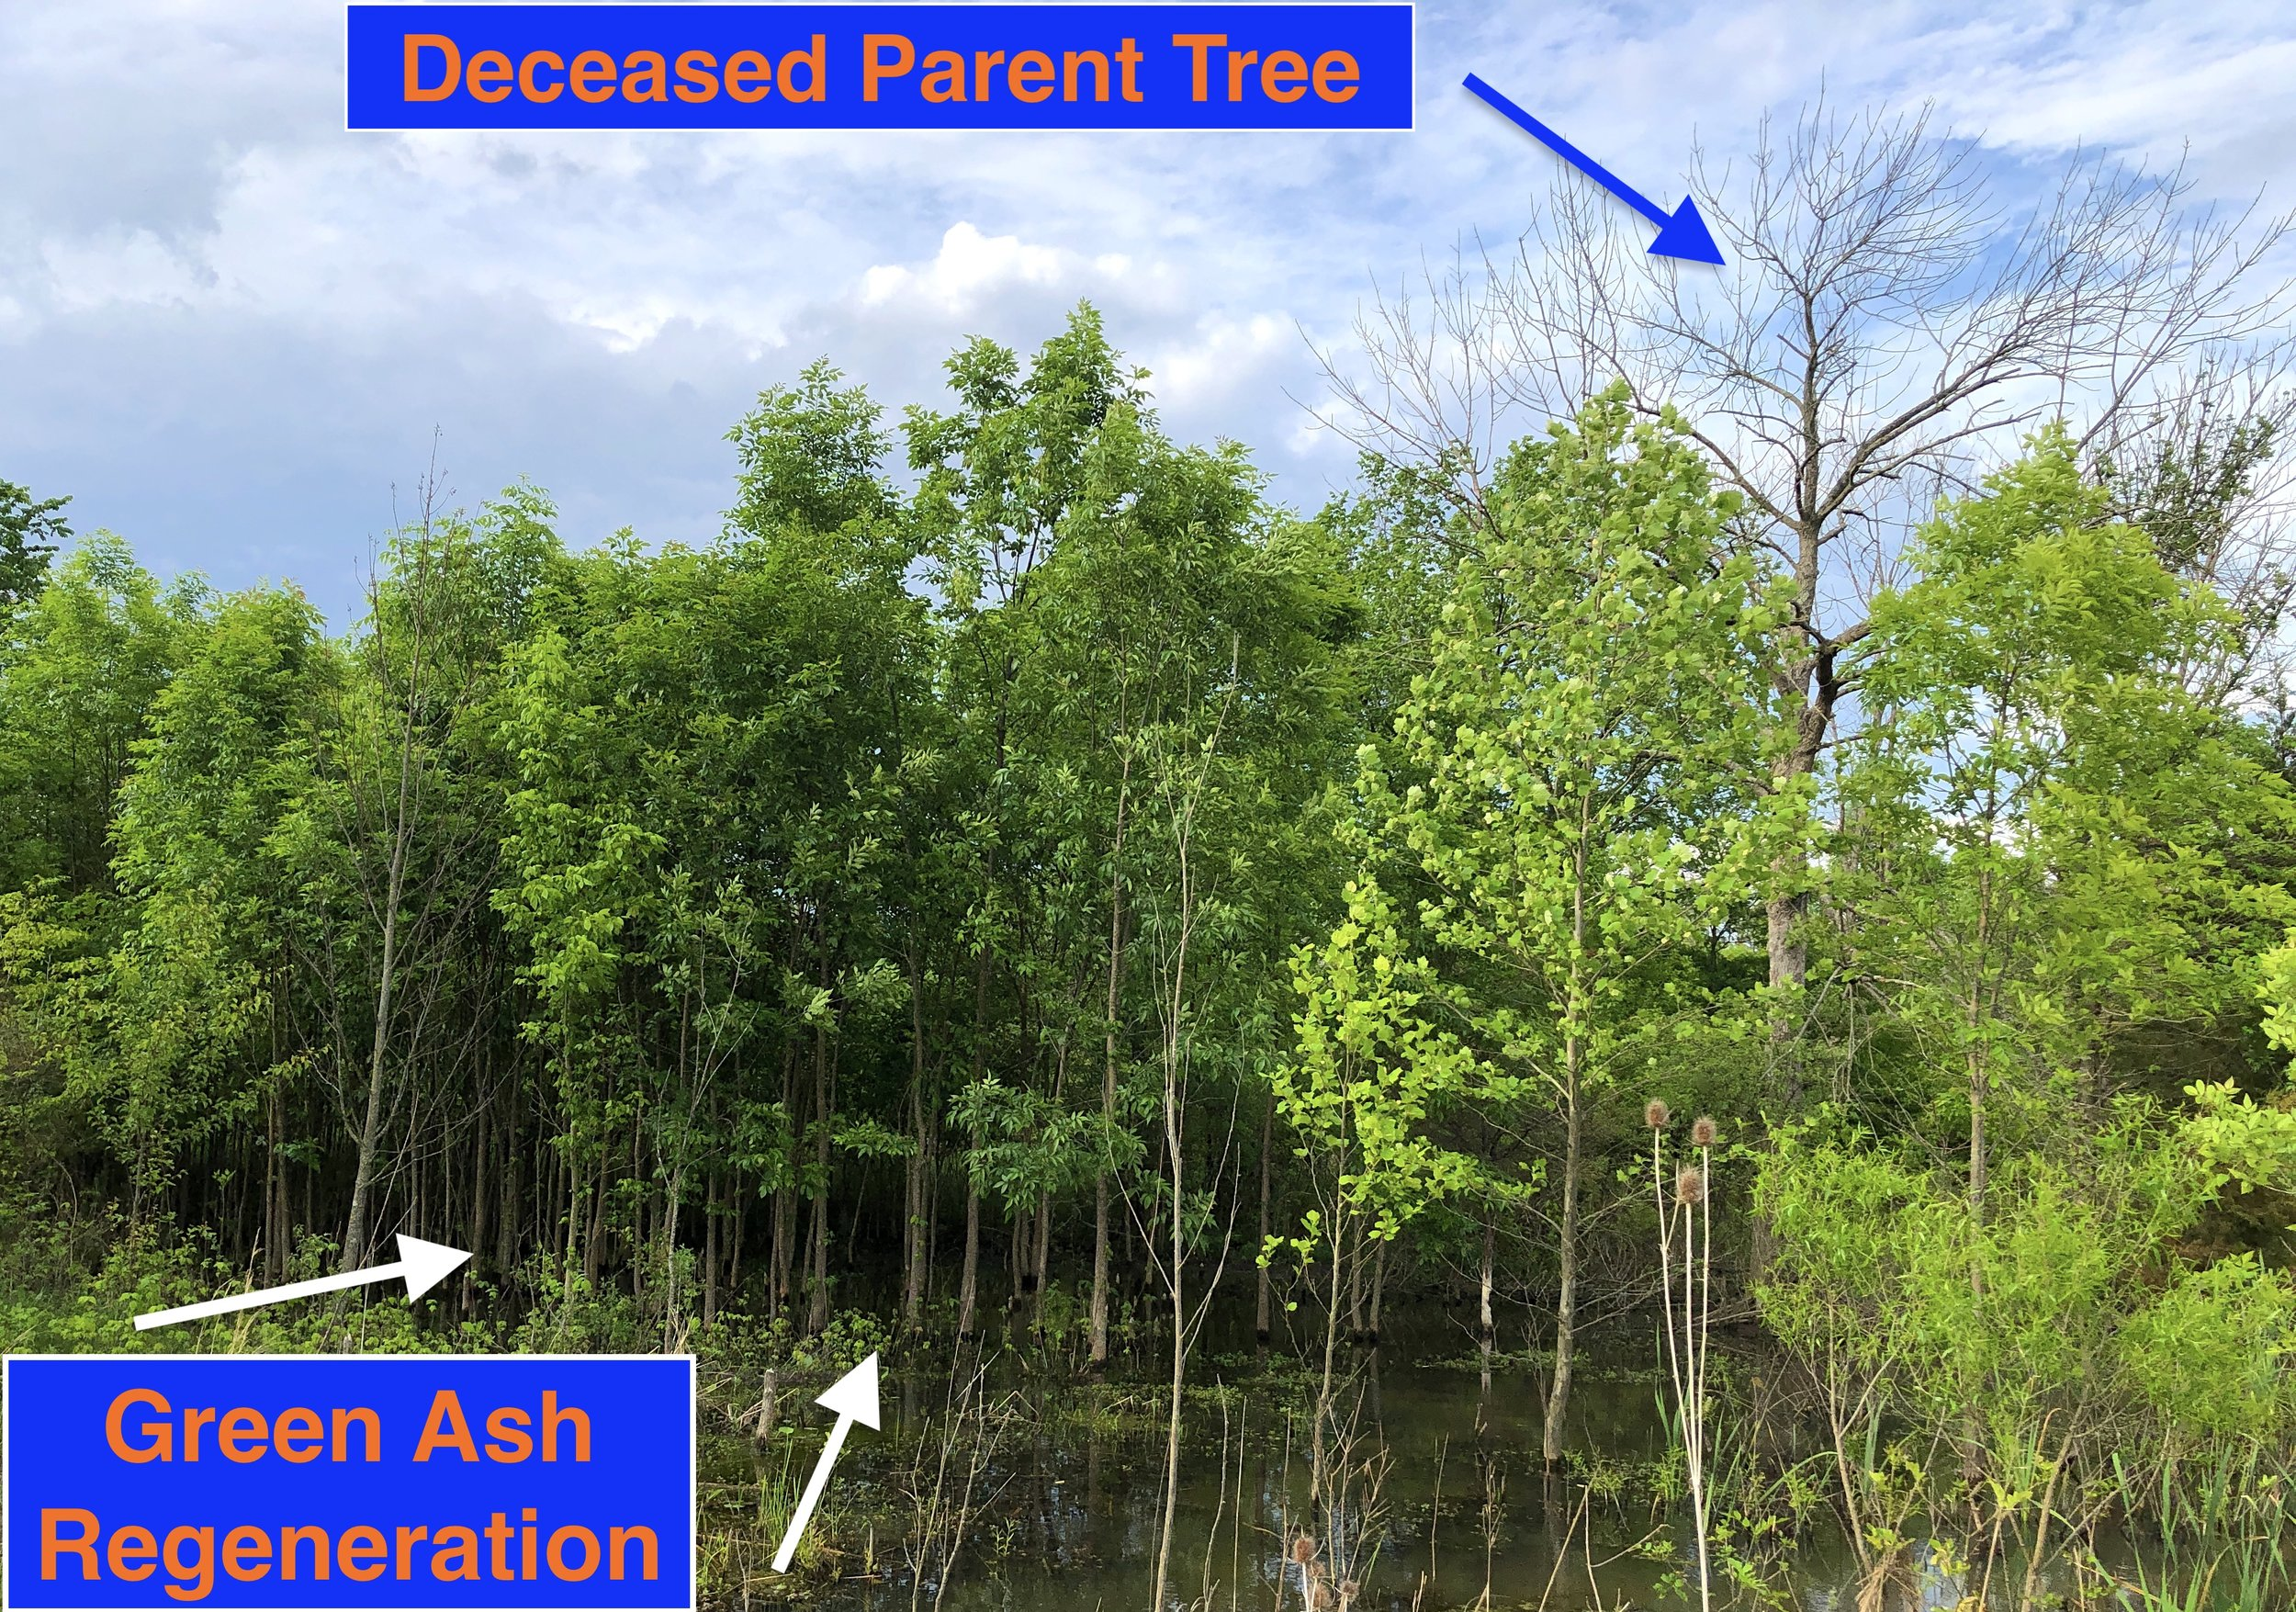 The first wave of EAB wiped out the mature ash trees at this site, but their offspring are still healthy a decade later.